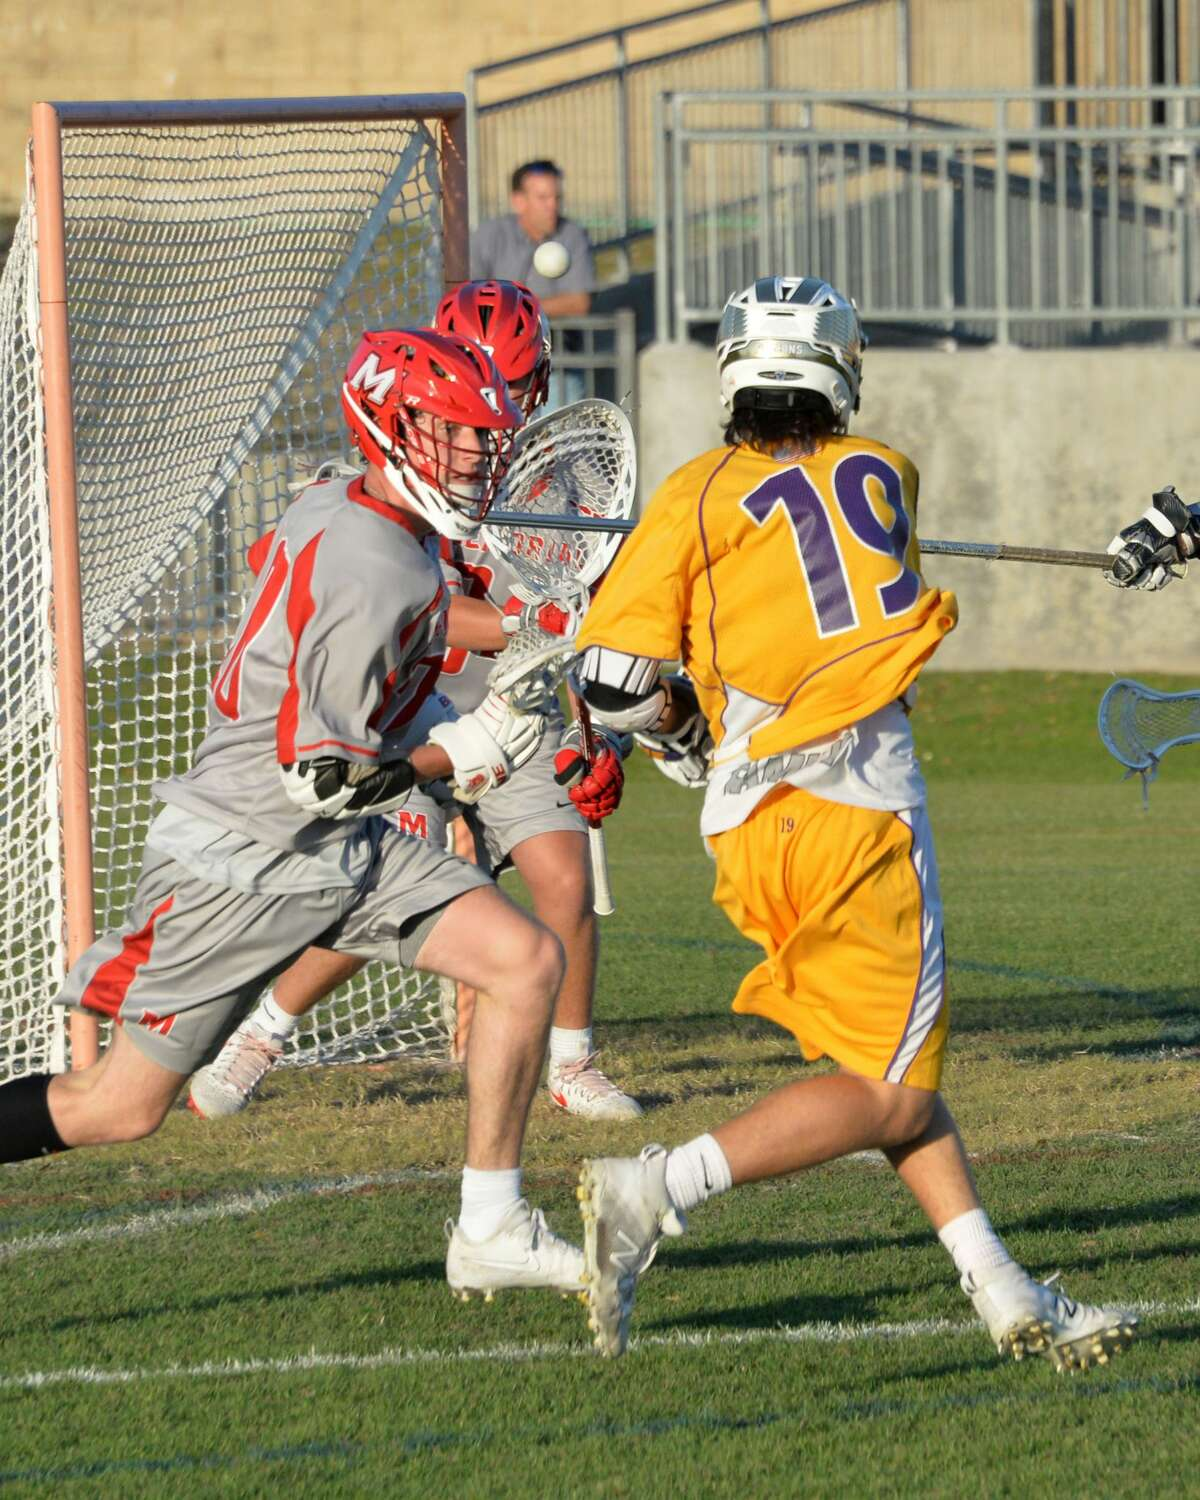 Jacob Magelssen (19) of Kinkaid scores the final goal in the fourth quarter of a varsity boys lacrosse match between the Memorial Mustangs and the Kinkaid Falcons on Thursday April 13, 2017 at Grob Stadium, Houston, TX.